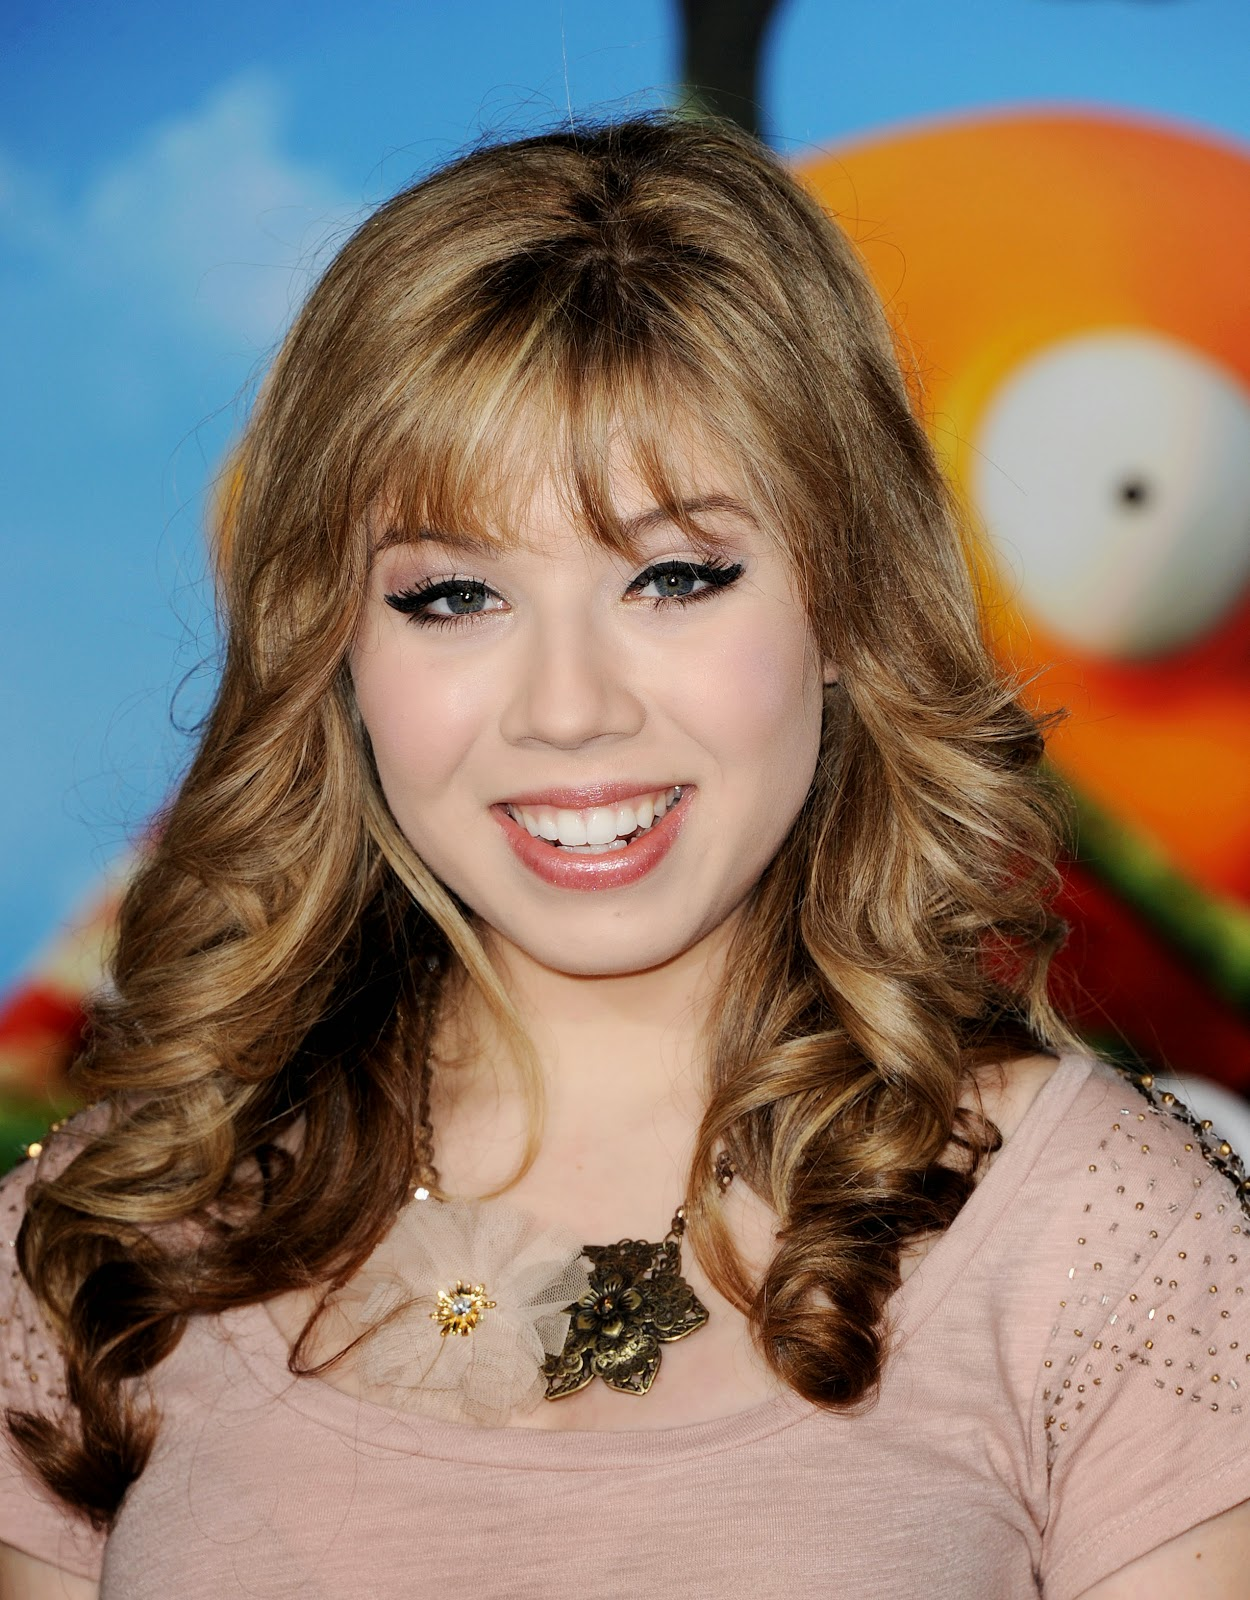 Jennette McCurdy HD Images | HD Wallpapers of Jennette McCurdy